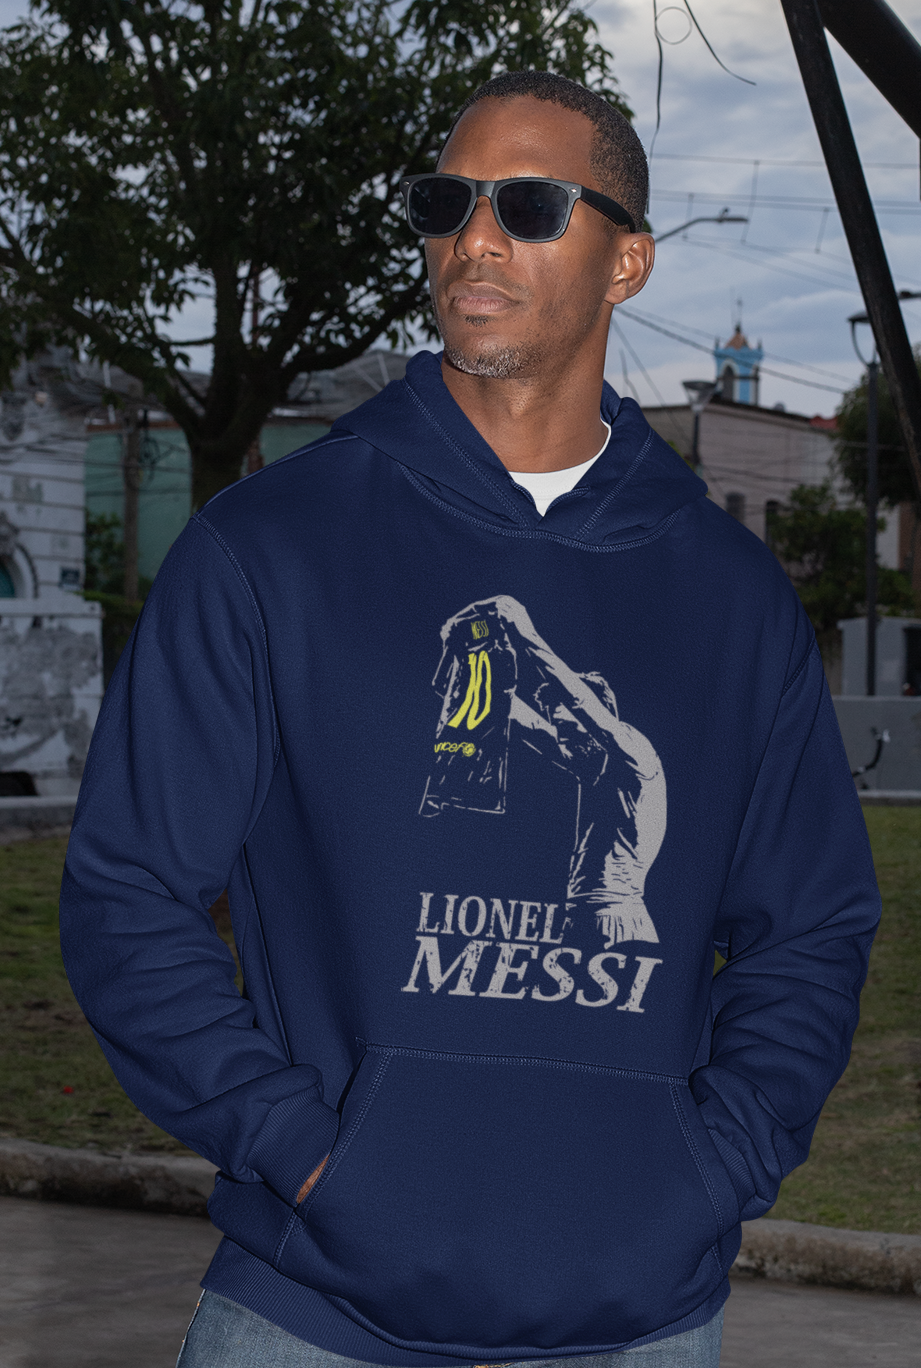 Men Full Sleeves Navy Blue Cotton Messi Hoodie Sweatshirt